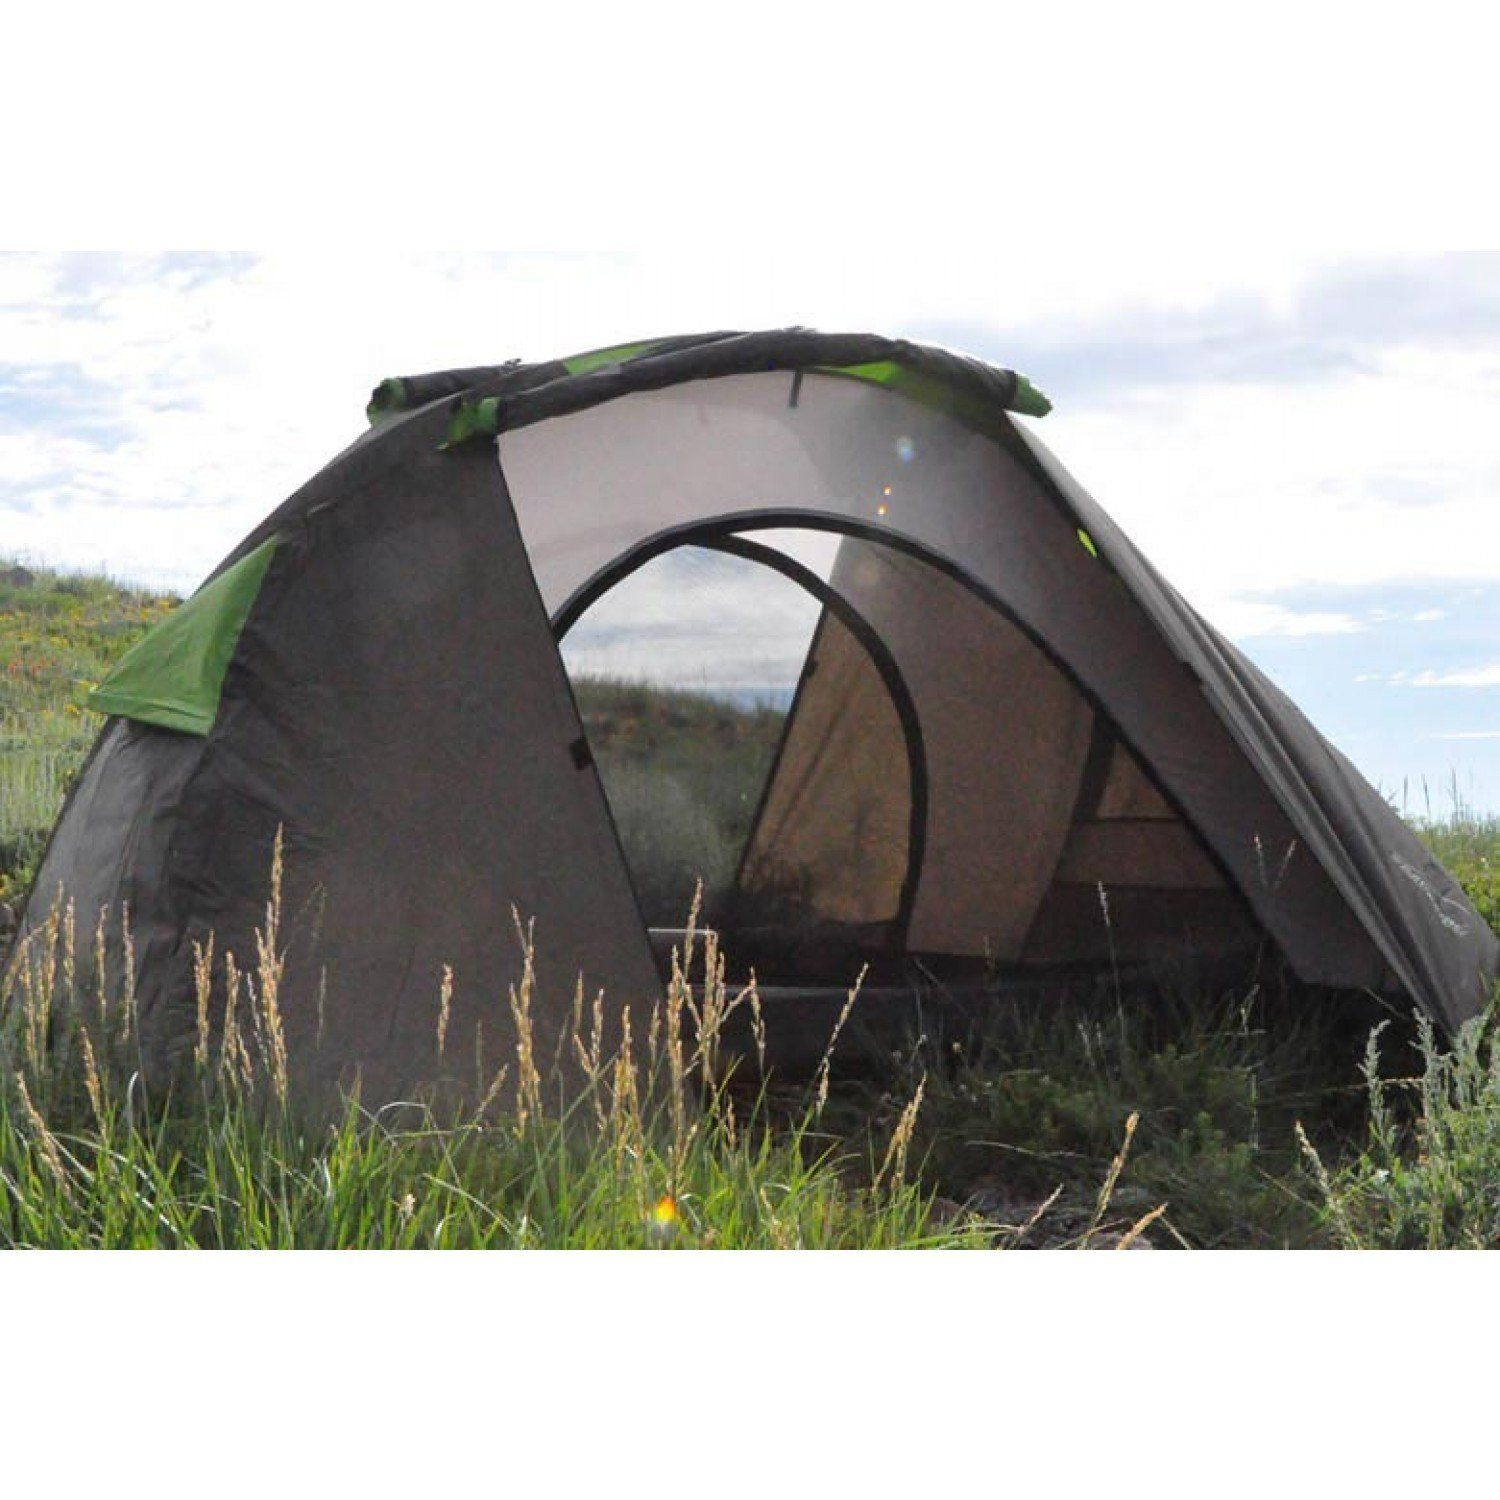 Lightweight Four Season C&ing Tents  sc 1 st  Pinterest & Lightweight Four Season Camping Tents | Tents | Pinterest | Tents